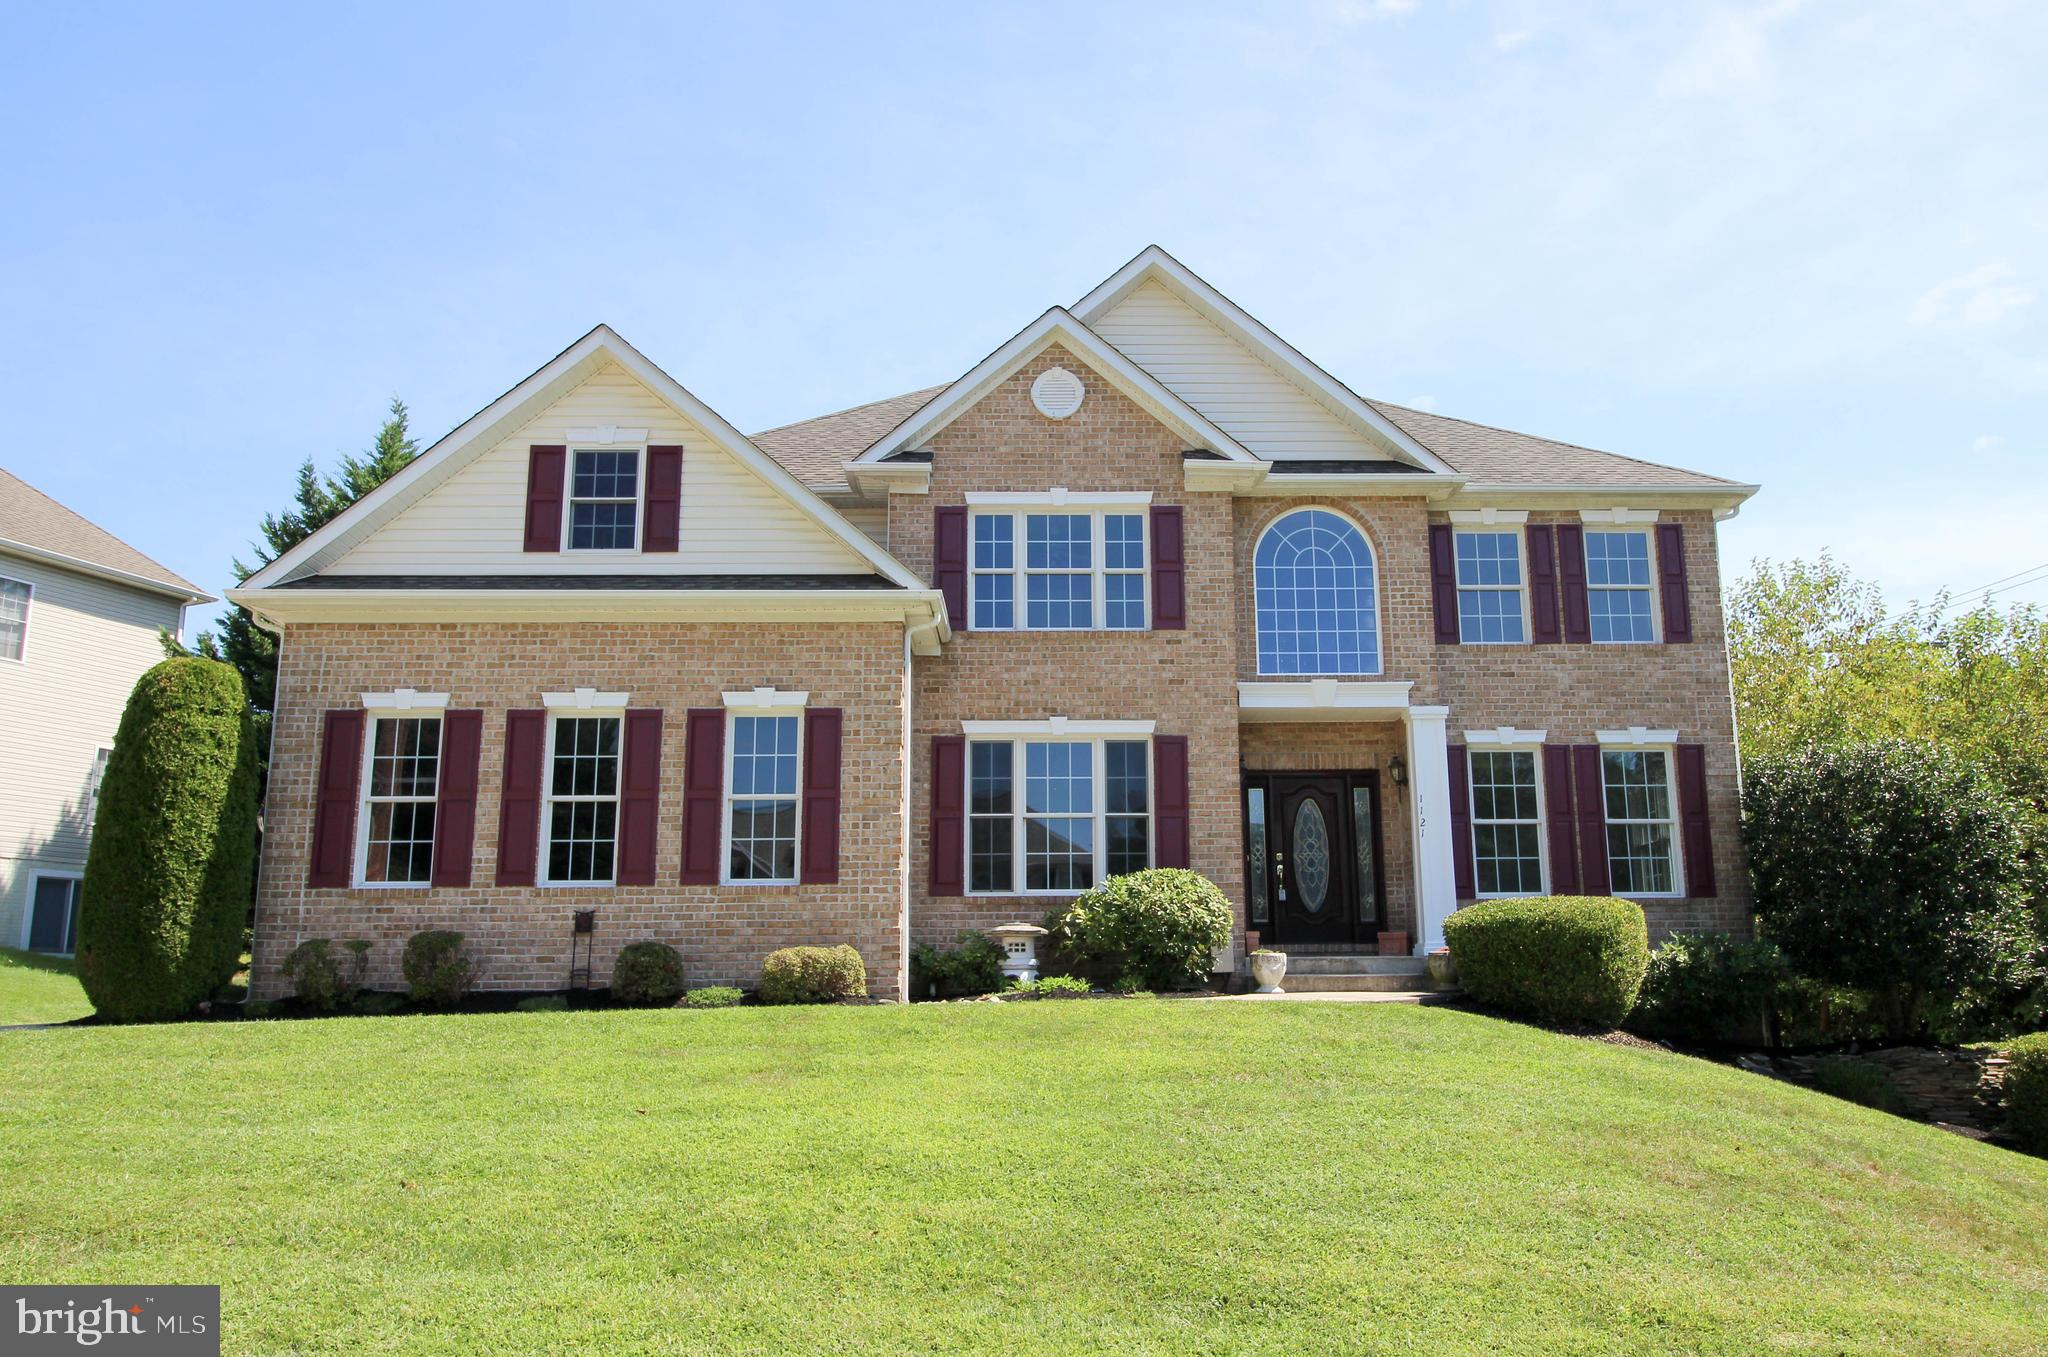 1121 SUNSET DRIVE, BEL AIR, MD 21014